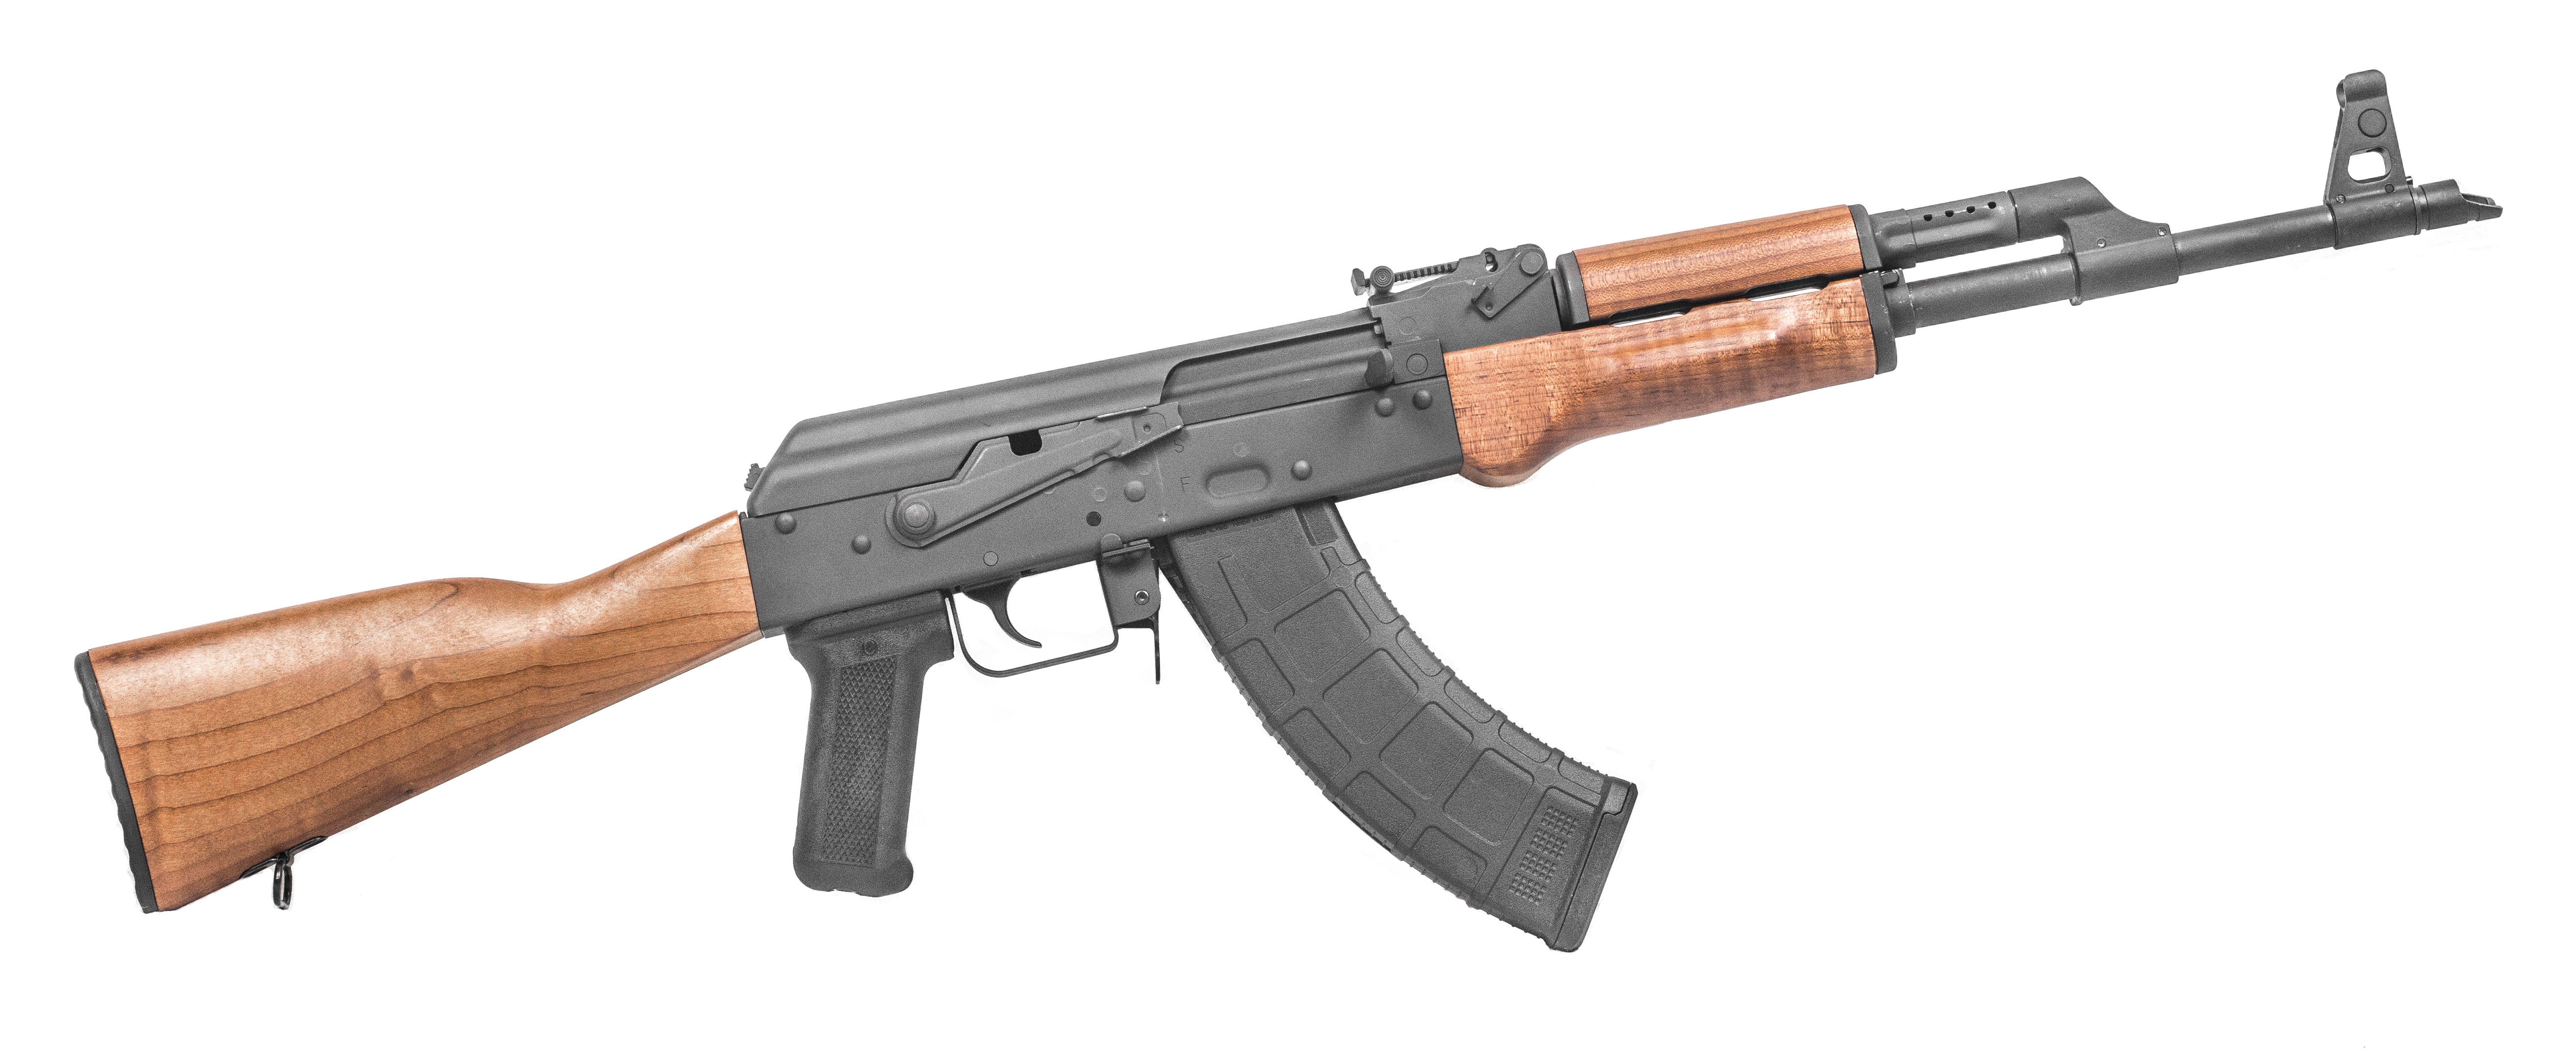 CENTURY ARMS ANNOUNCES NEW LIFETIME WARRANTY FOR VSKA AK RIFLE